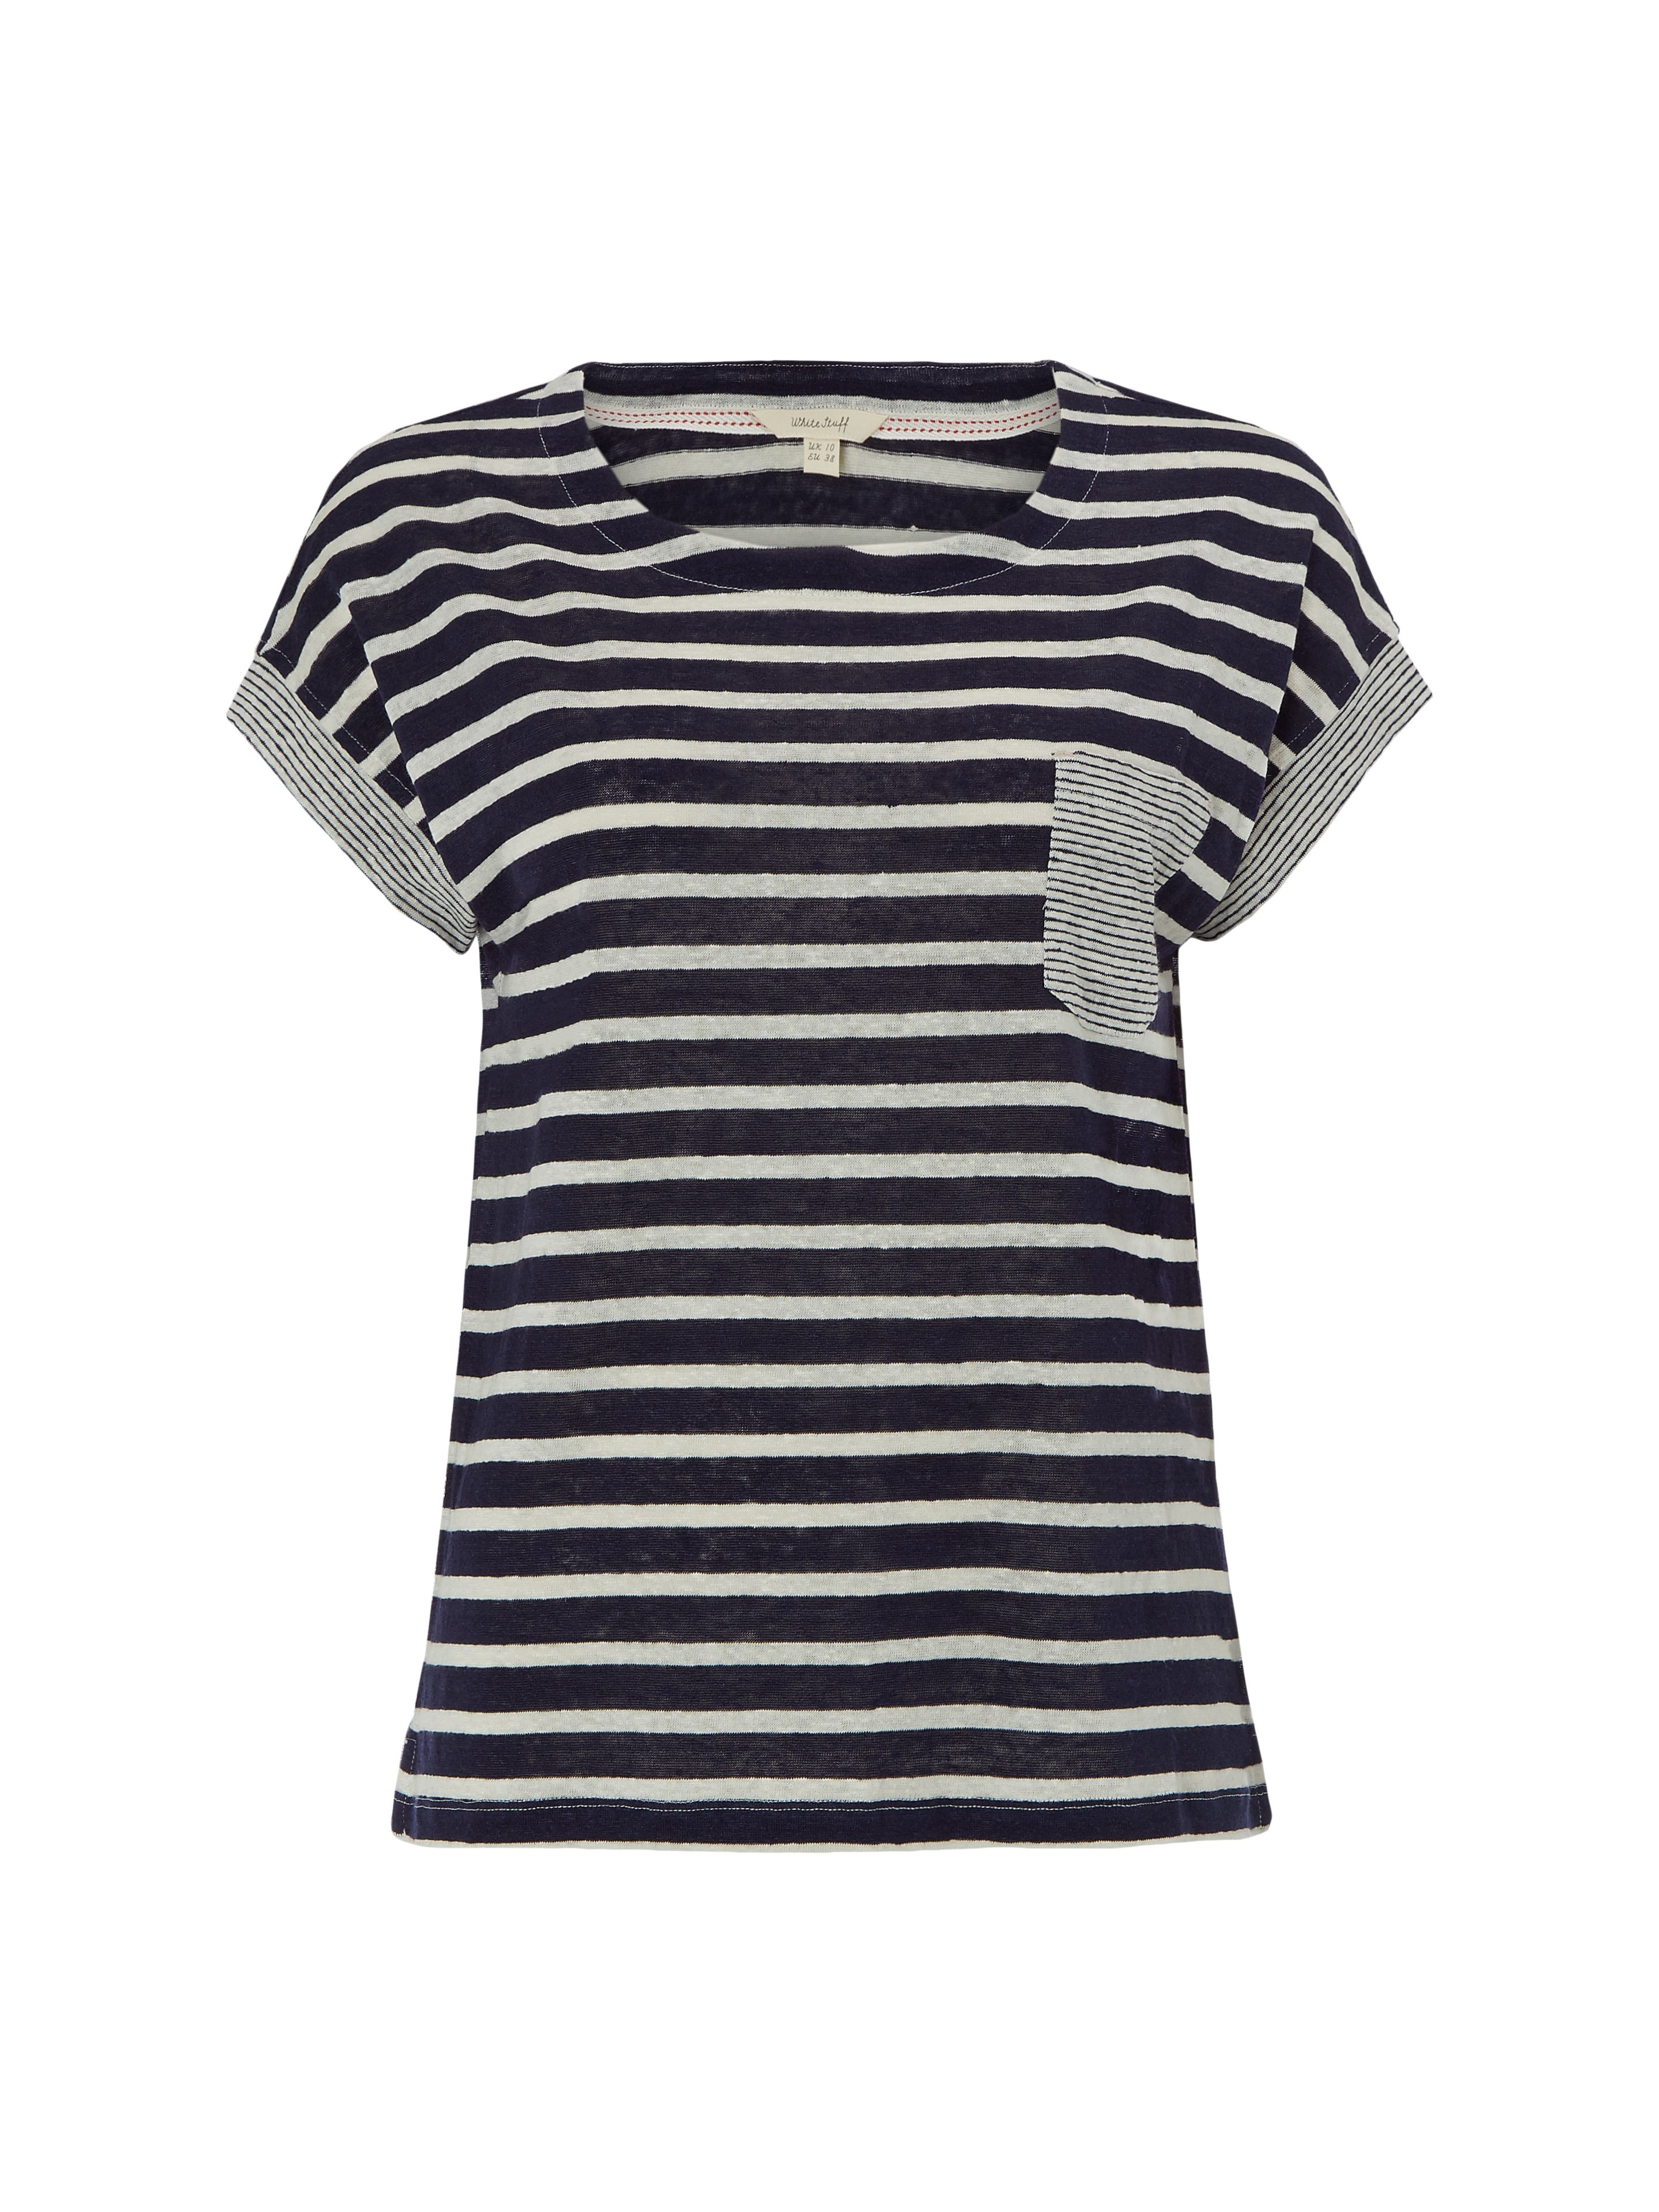 White Stuff Tilly Ticking Jersey Tee, Blue